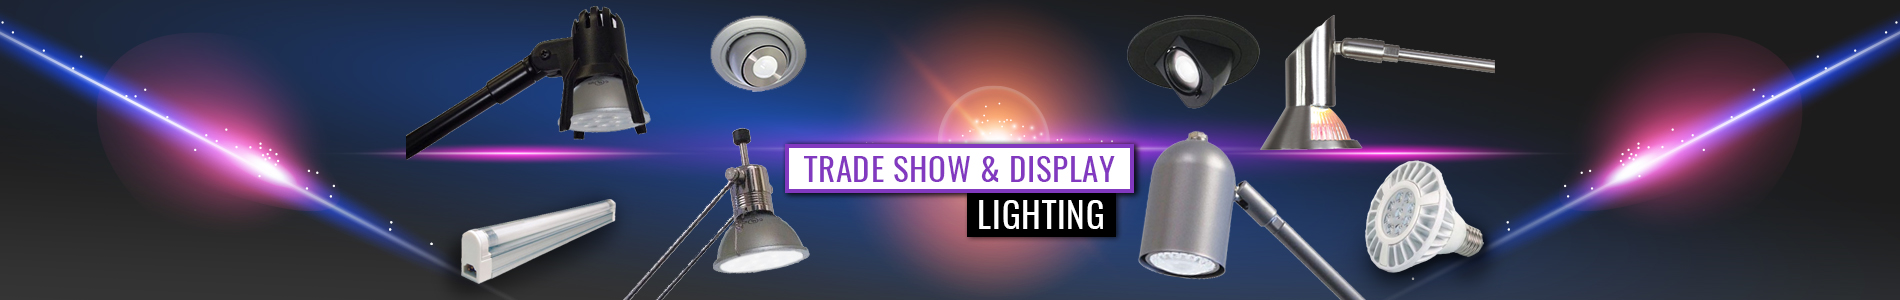 Trade Show & Display Lighting